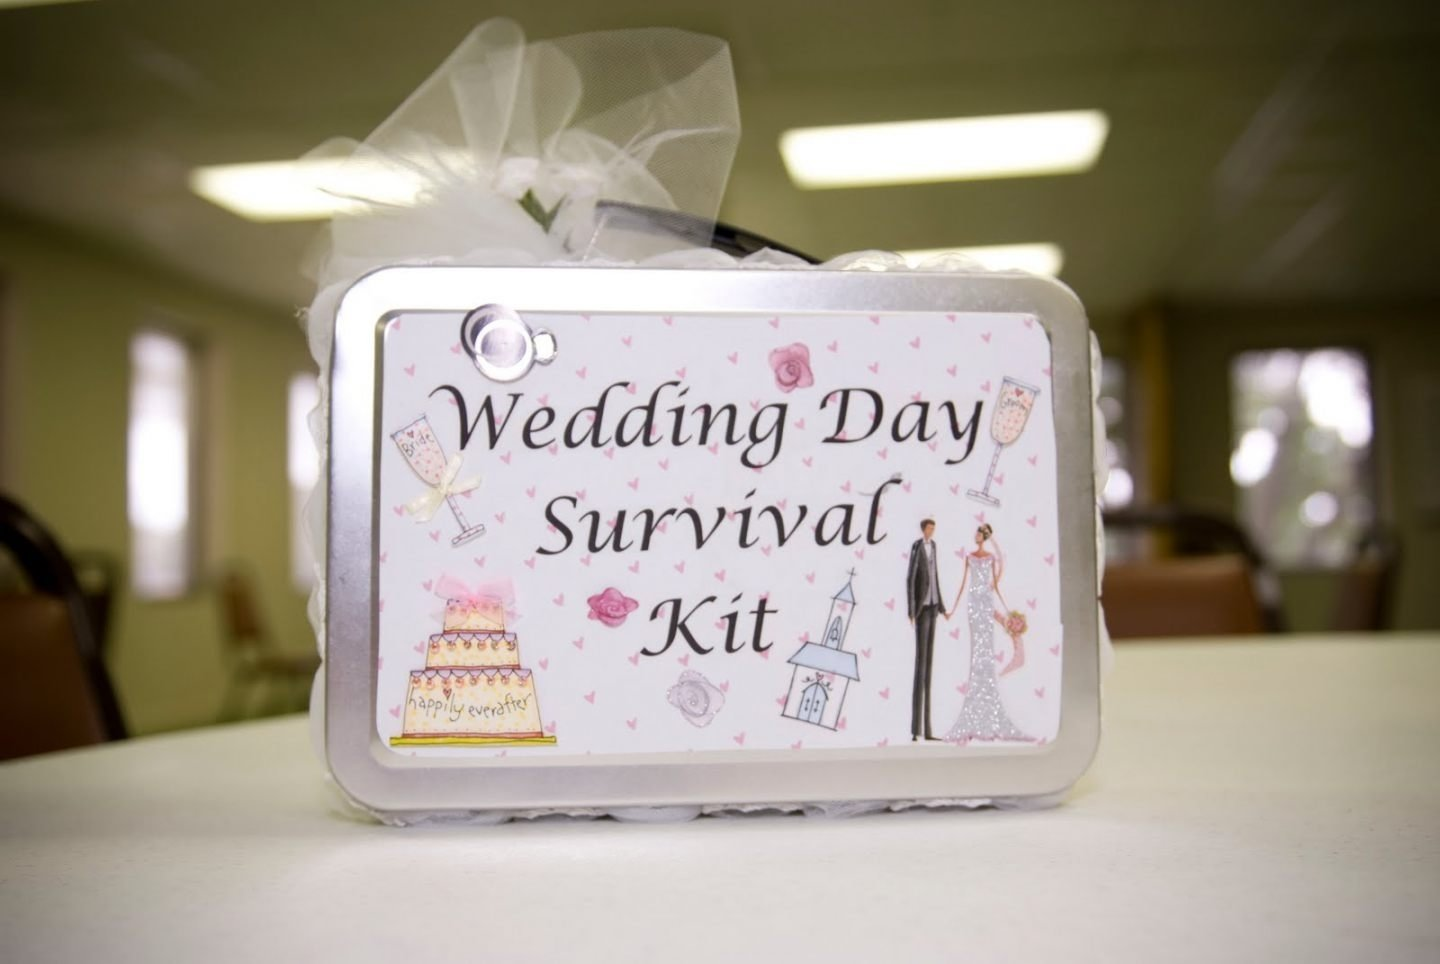 10 Wonderful Gift Ideas For The Bride lovable bride to be ideas creative word as bridal shower gift ideas 11